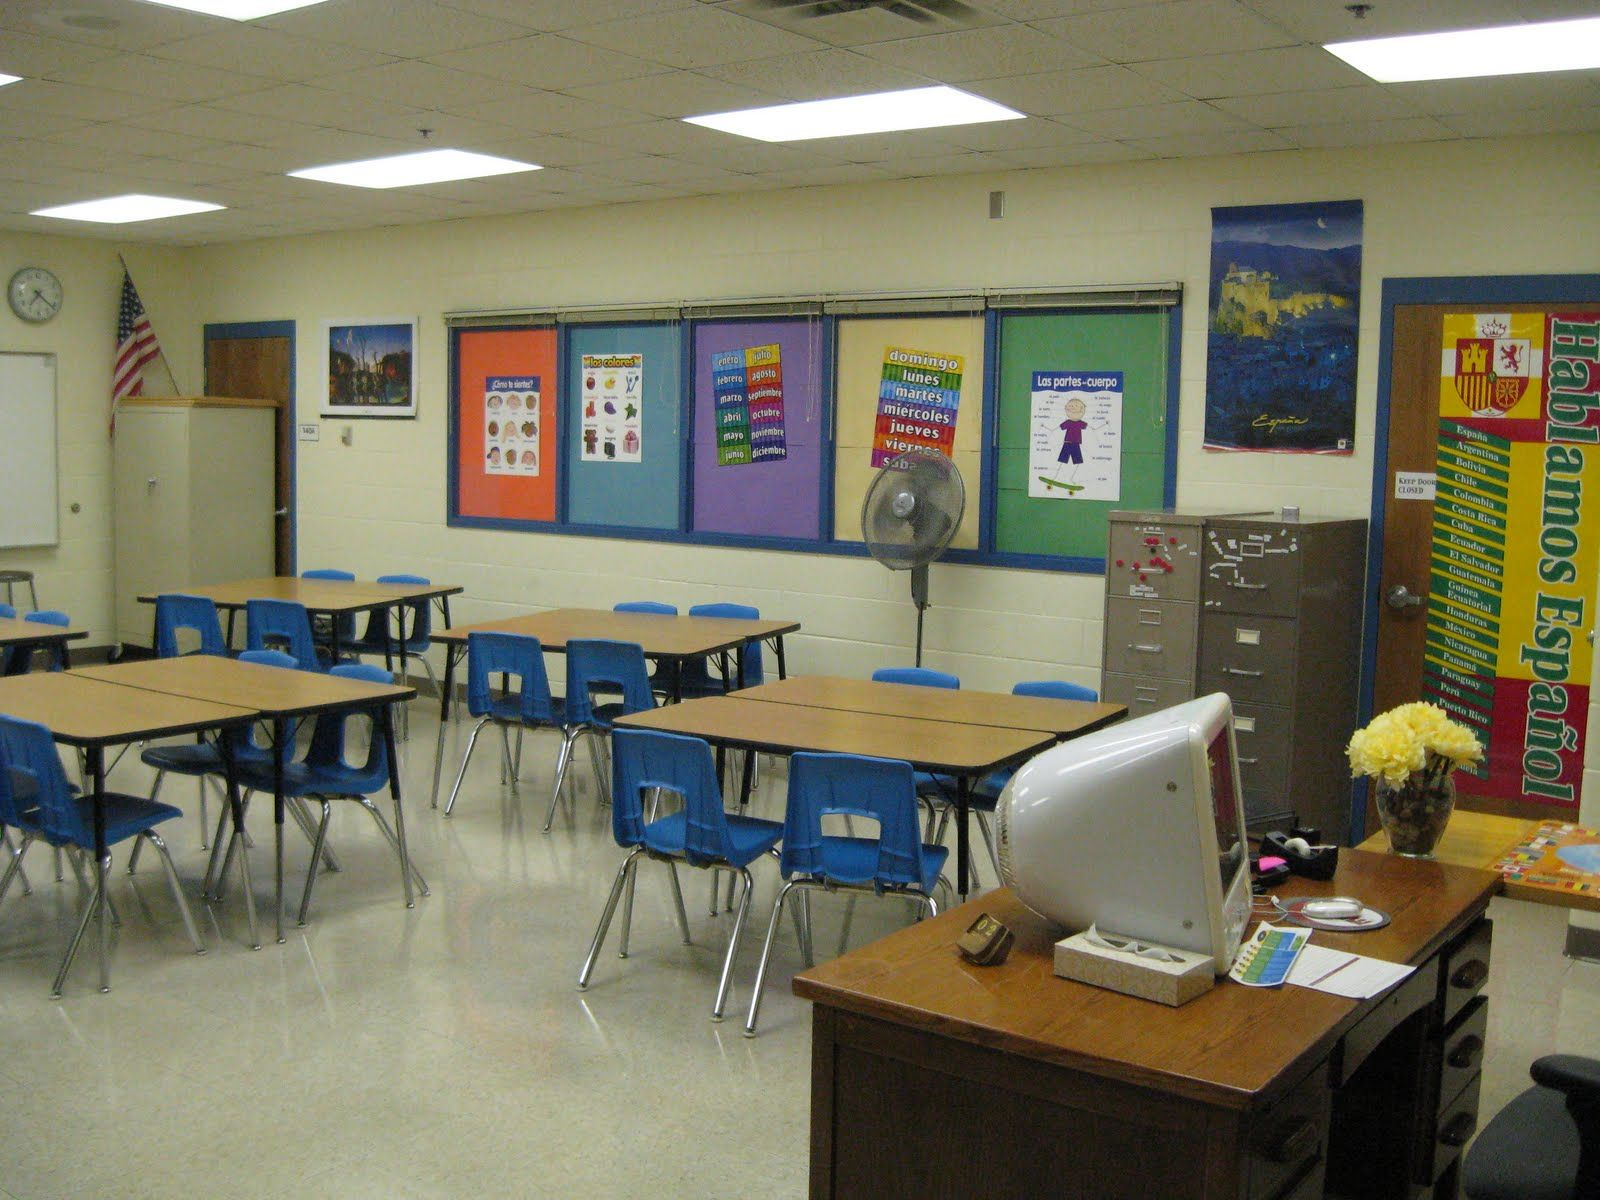 Classroom Design Architecture : Classroom decorating themes architecture design with